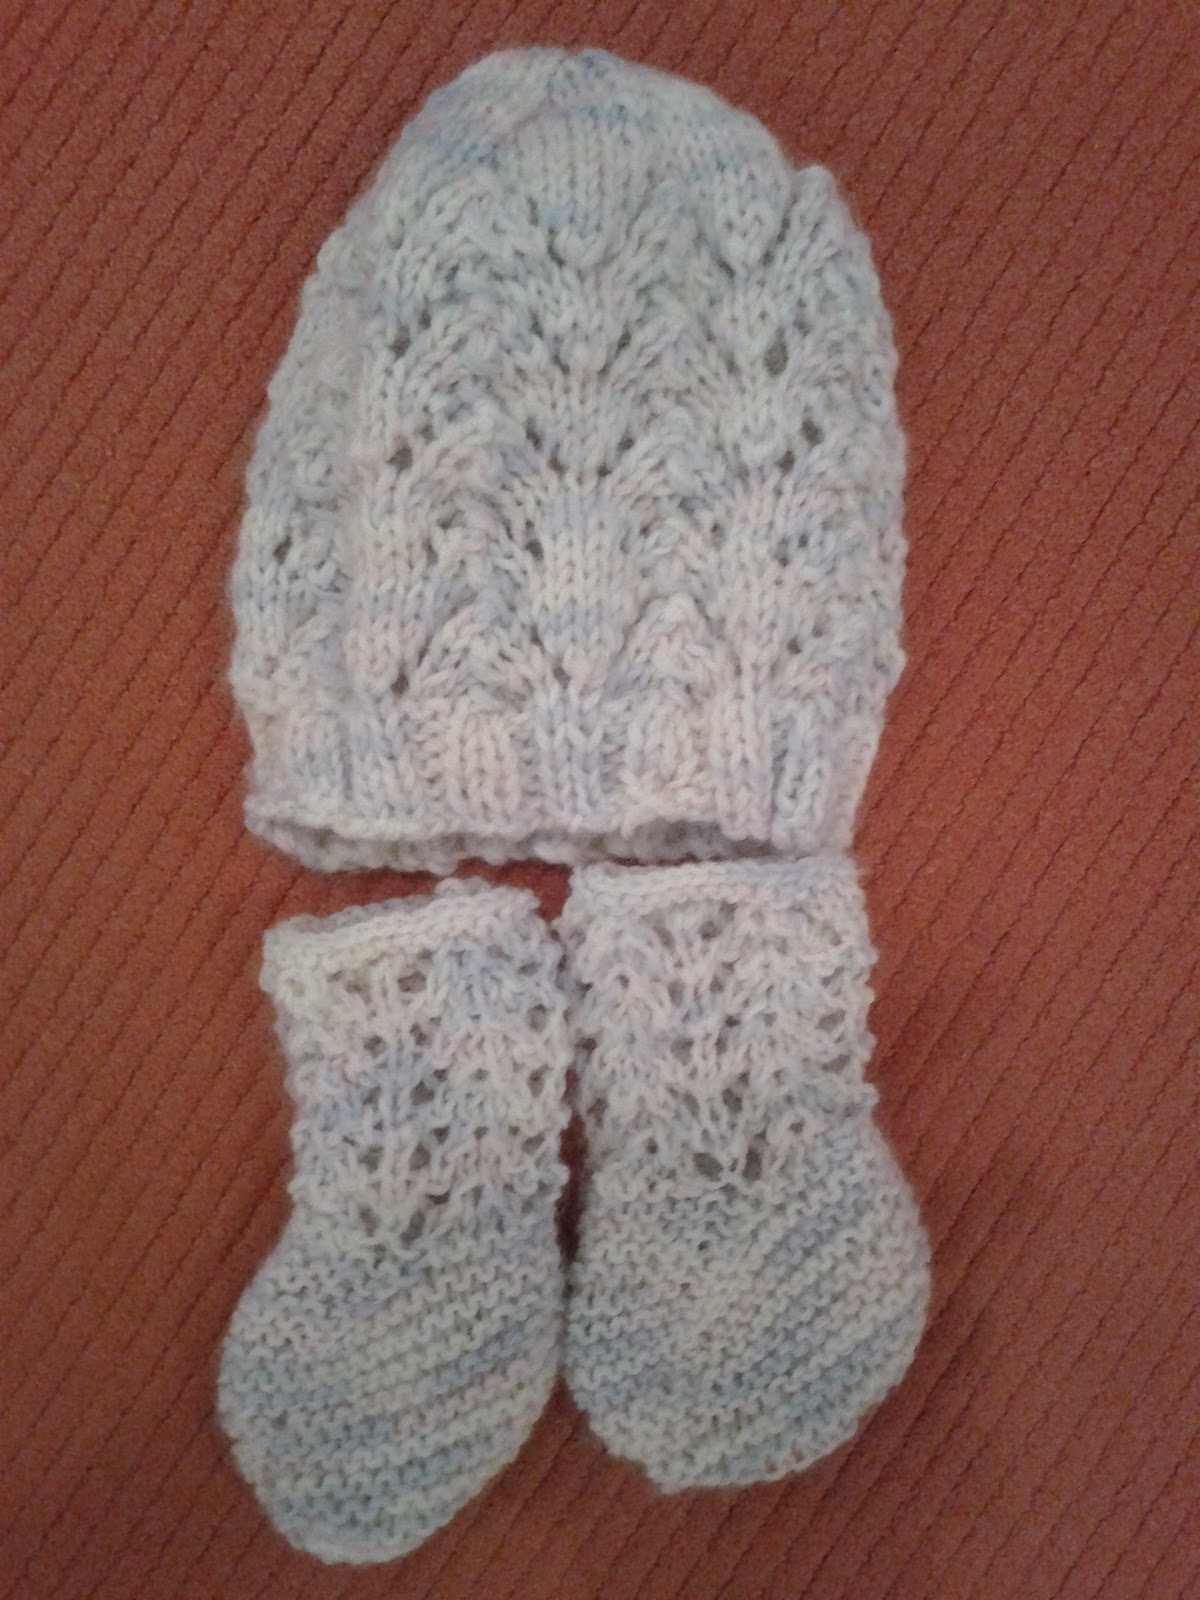 Lacy froth: 25 Lace baby booties and beanies